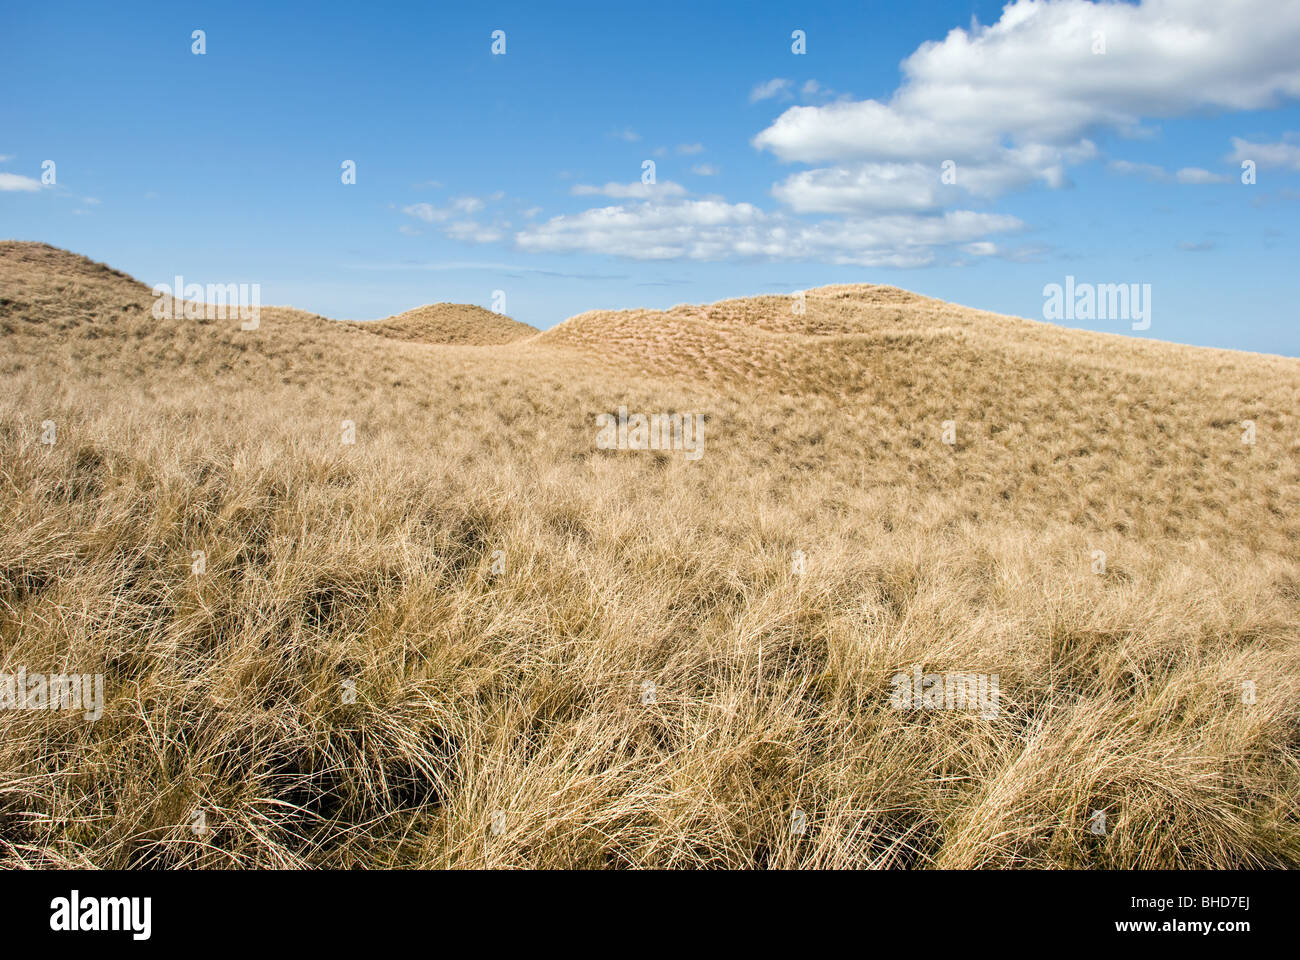 Sand dunes of Sandwood Bay Scotland taken on sunny day with blue sky - Stock Image